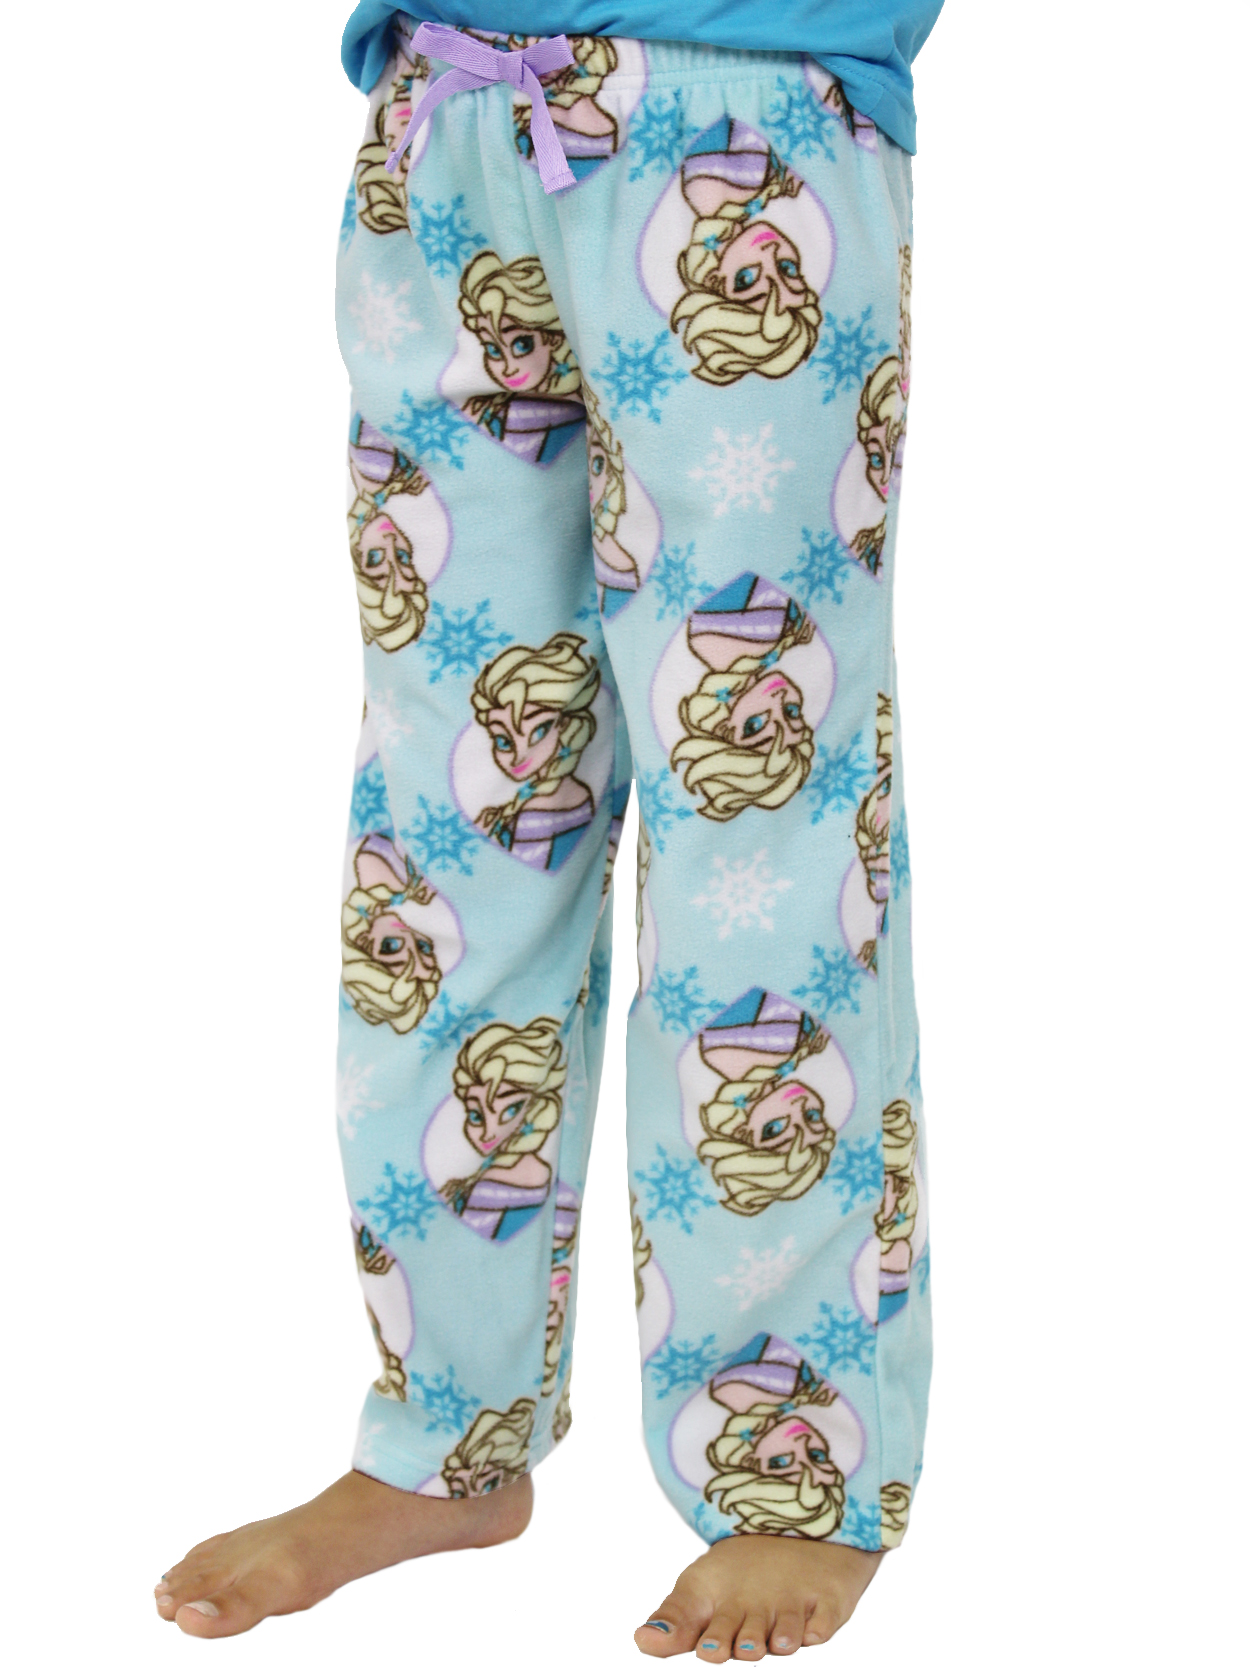 Disney Frozen Elsa Girls Plush Fleece Lounge Pajama Pants 21FZ762GPT